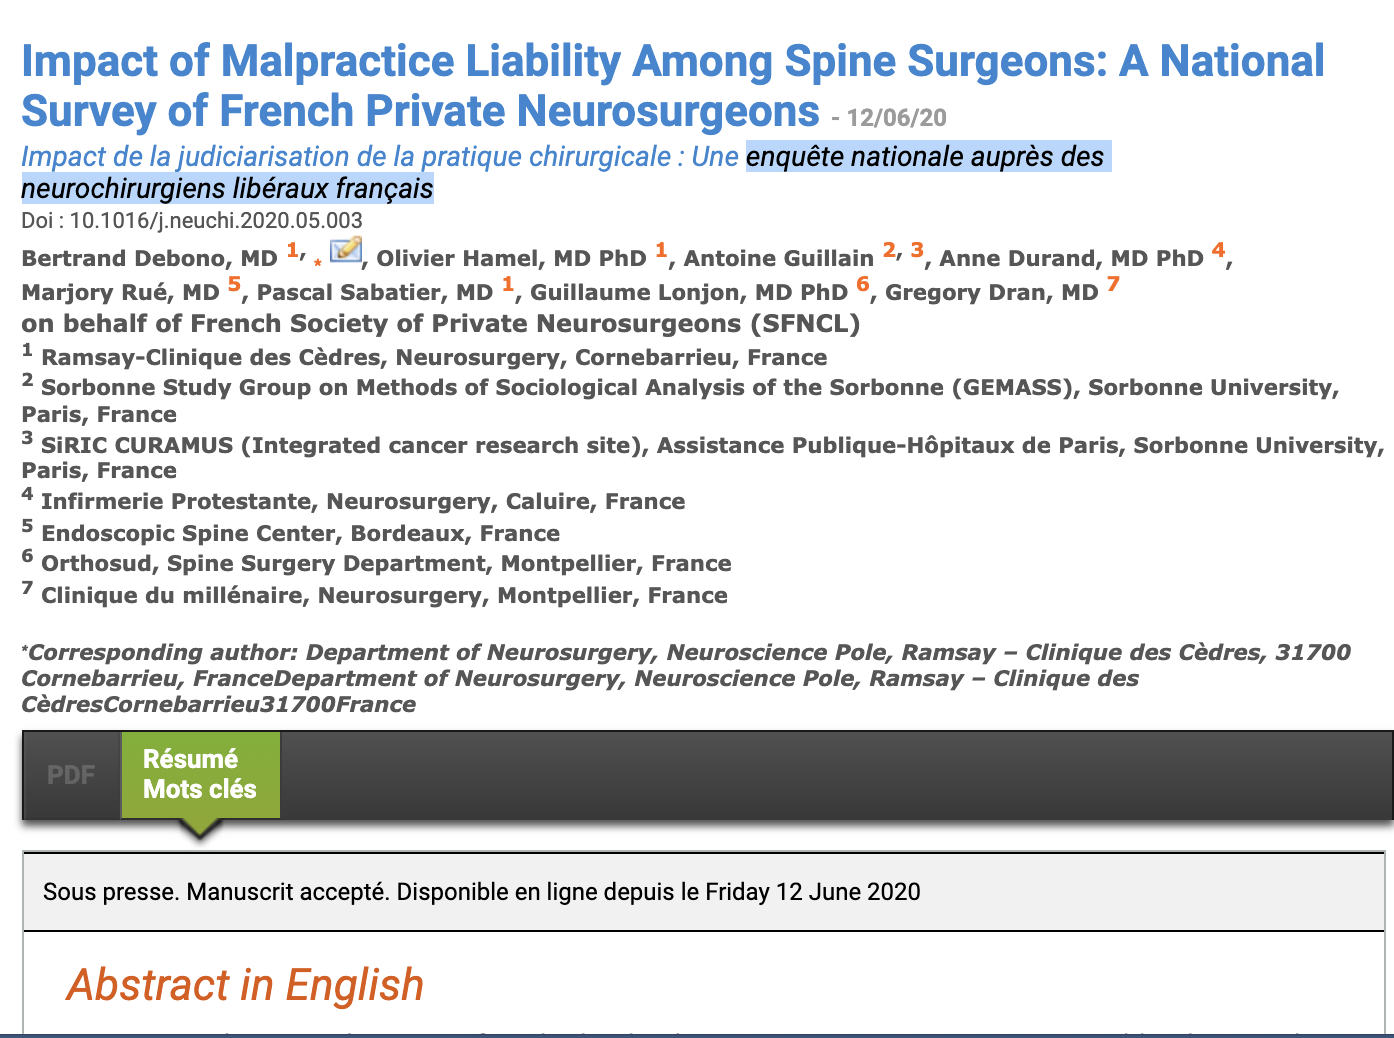 Impact of Malpractice Liability Among Spine Surgeons: A National Survey of French Private Neurosurgeons.